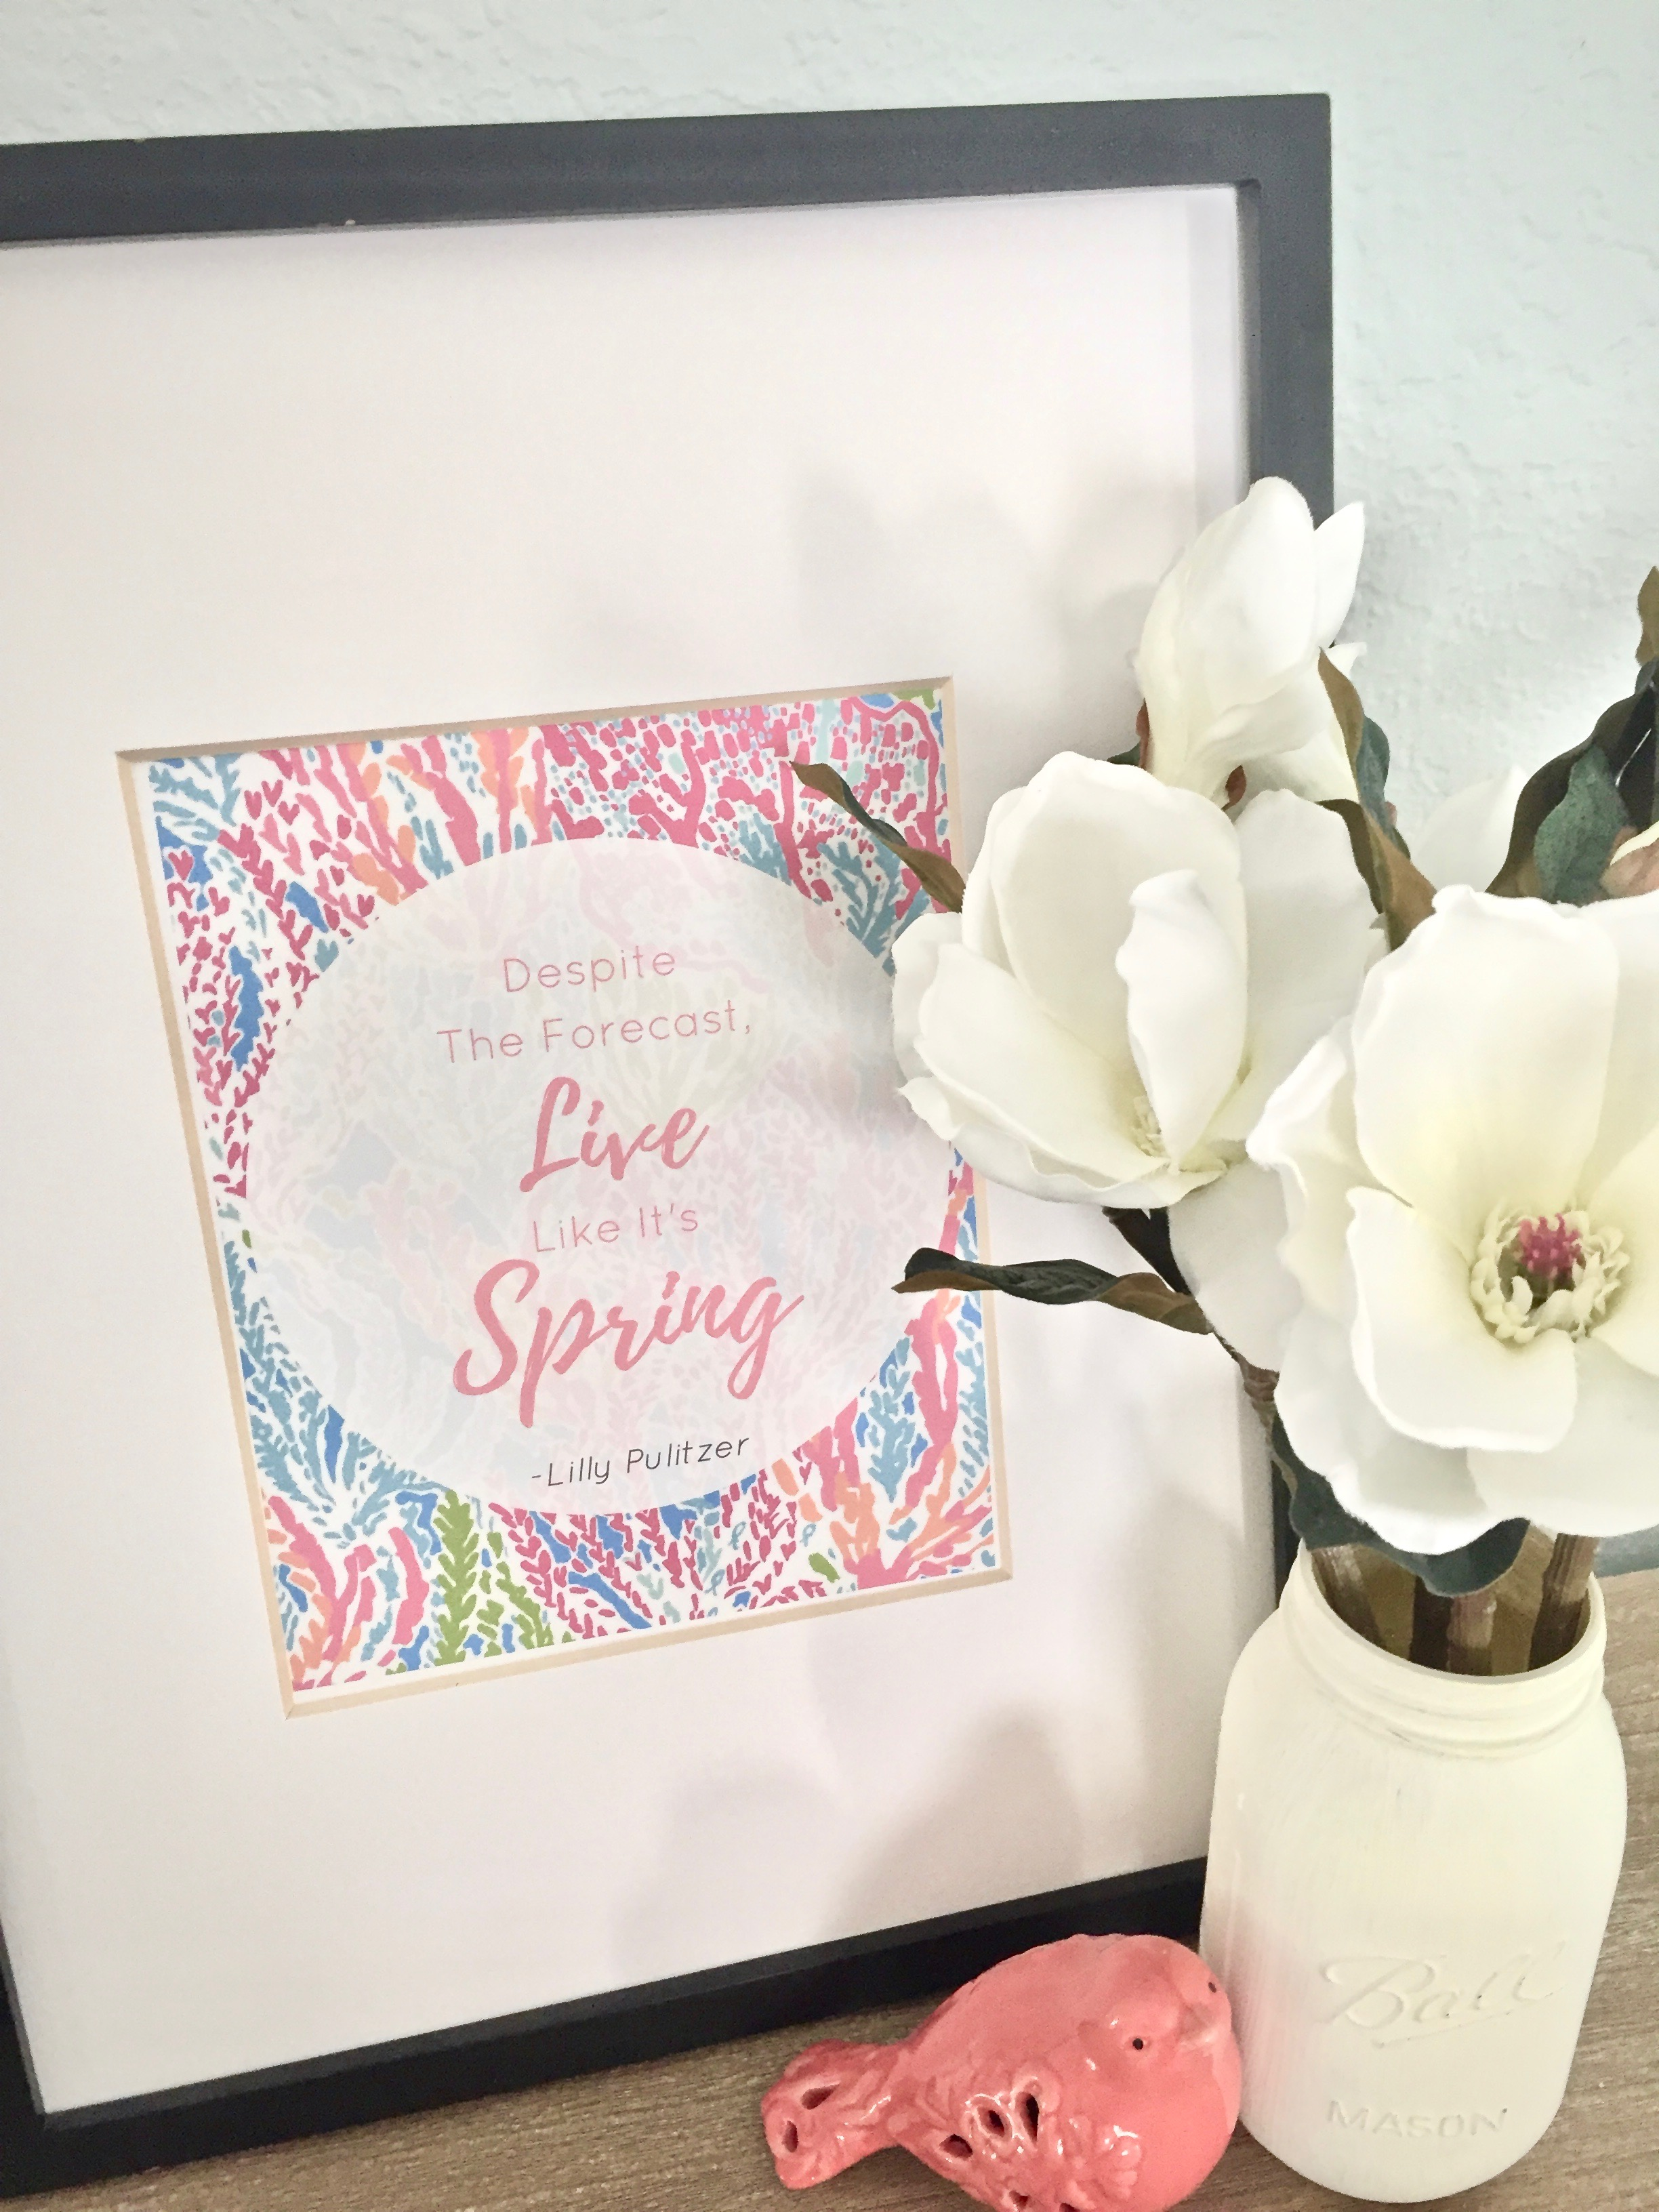 Lilly Pulitzer Spring Quote - Affordable Ways To Spruce Up Your Home For Spring - With Free Spring Printables